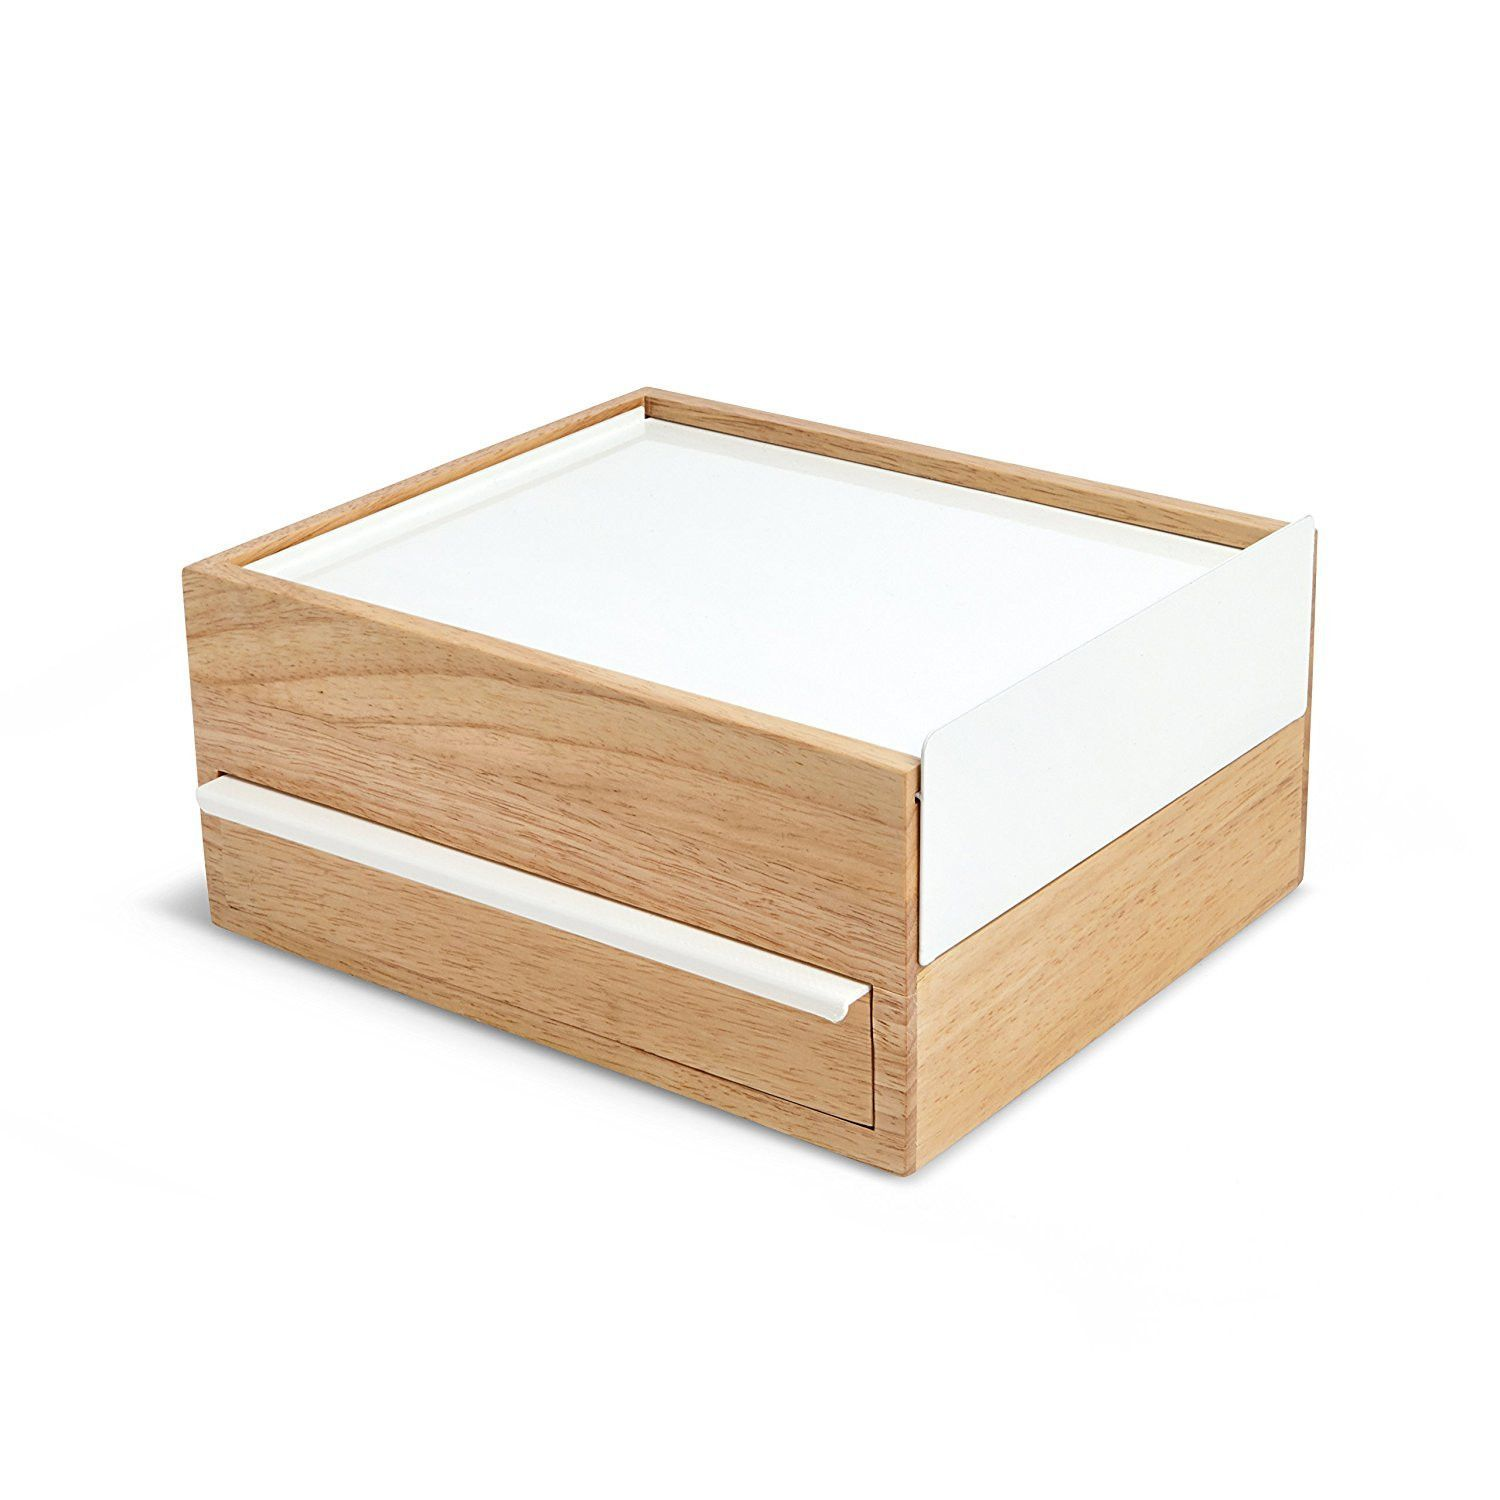 umbra stowit jewelry box 7 to 10 days free shipping